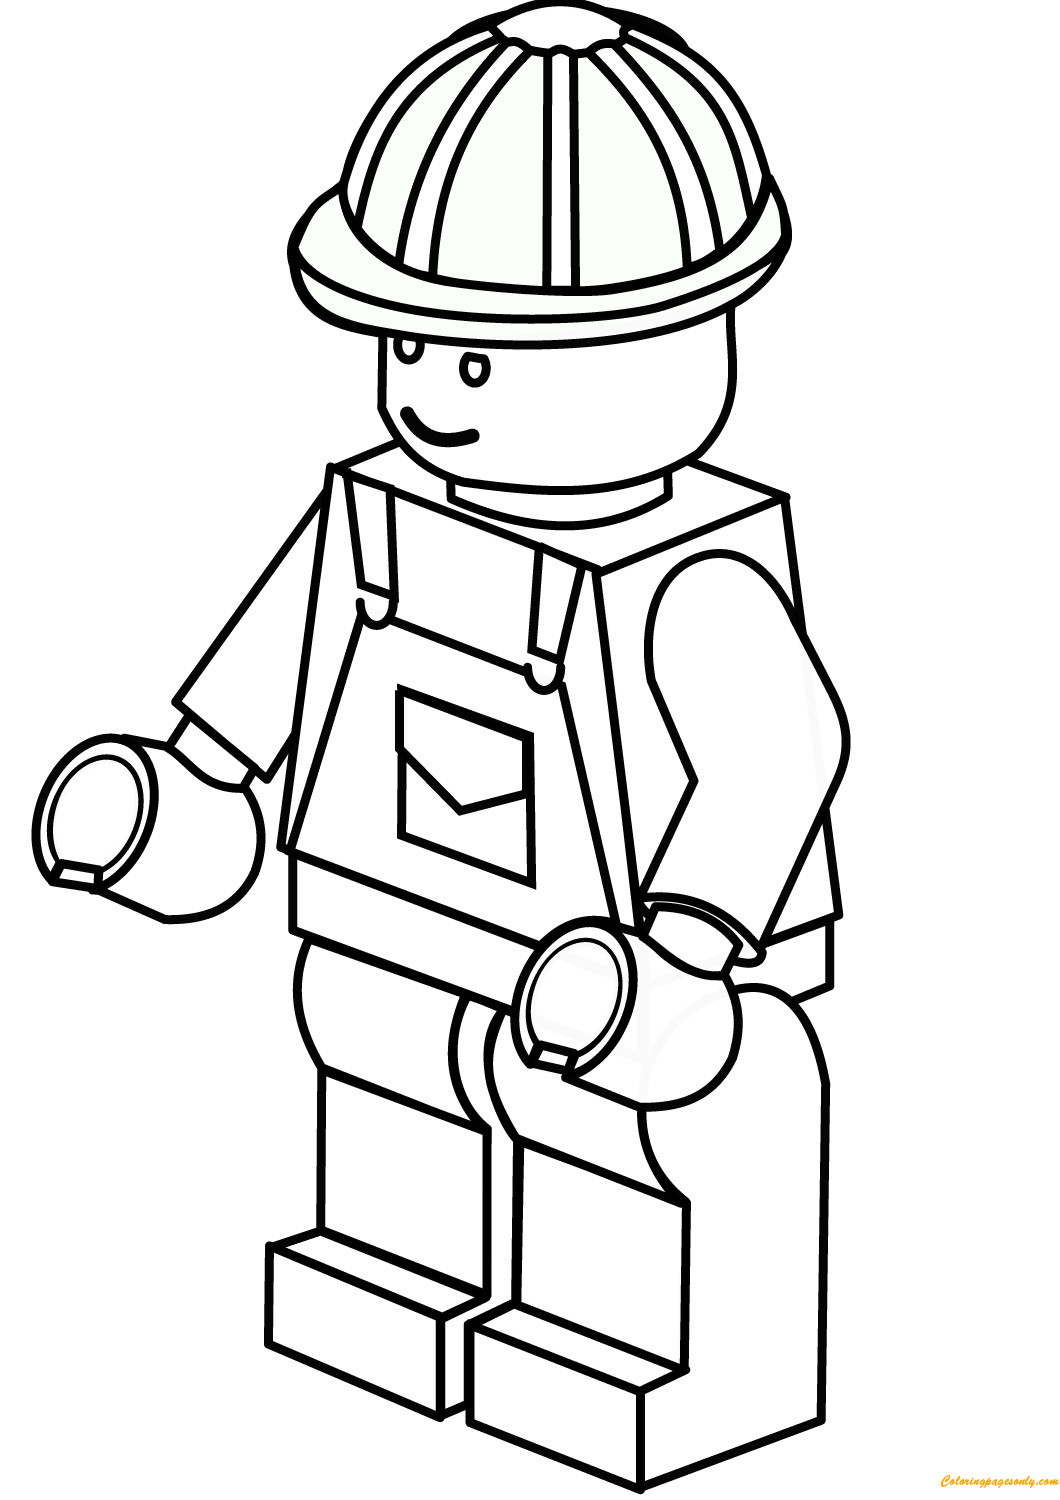 1060x1500 Ram Truck Coloring Pages Best Of Construction Coloring Pages